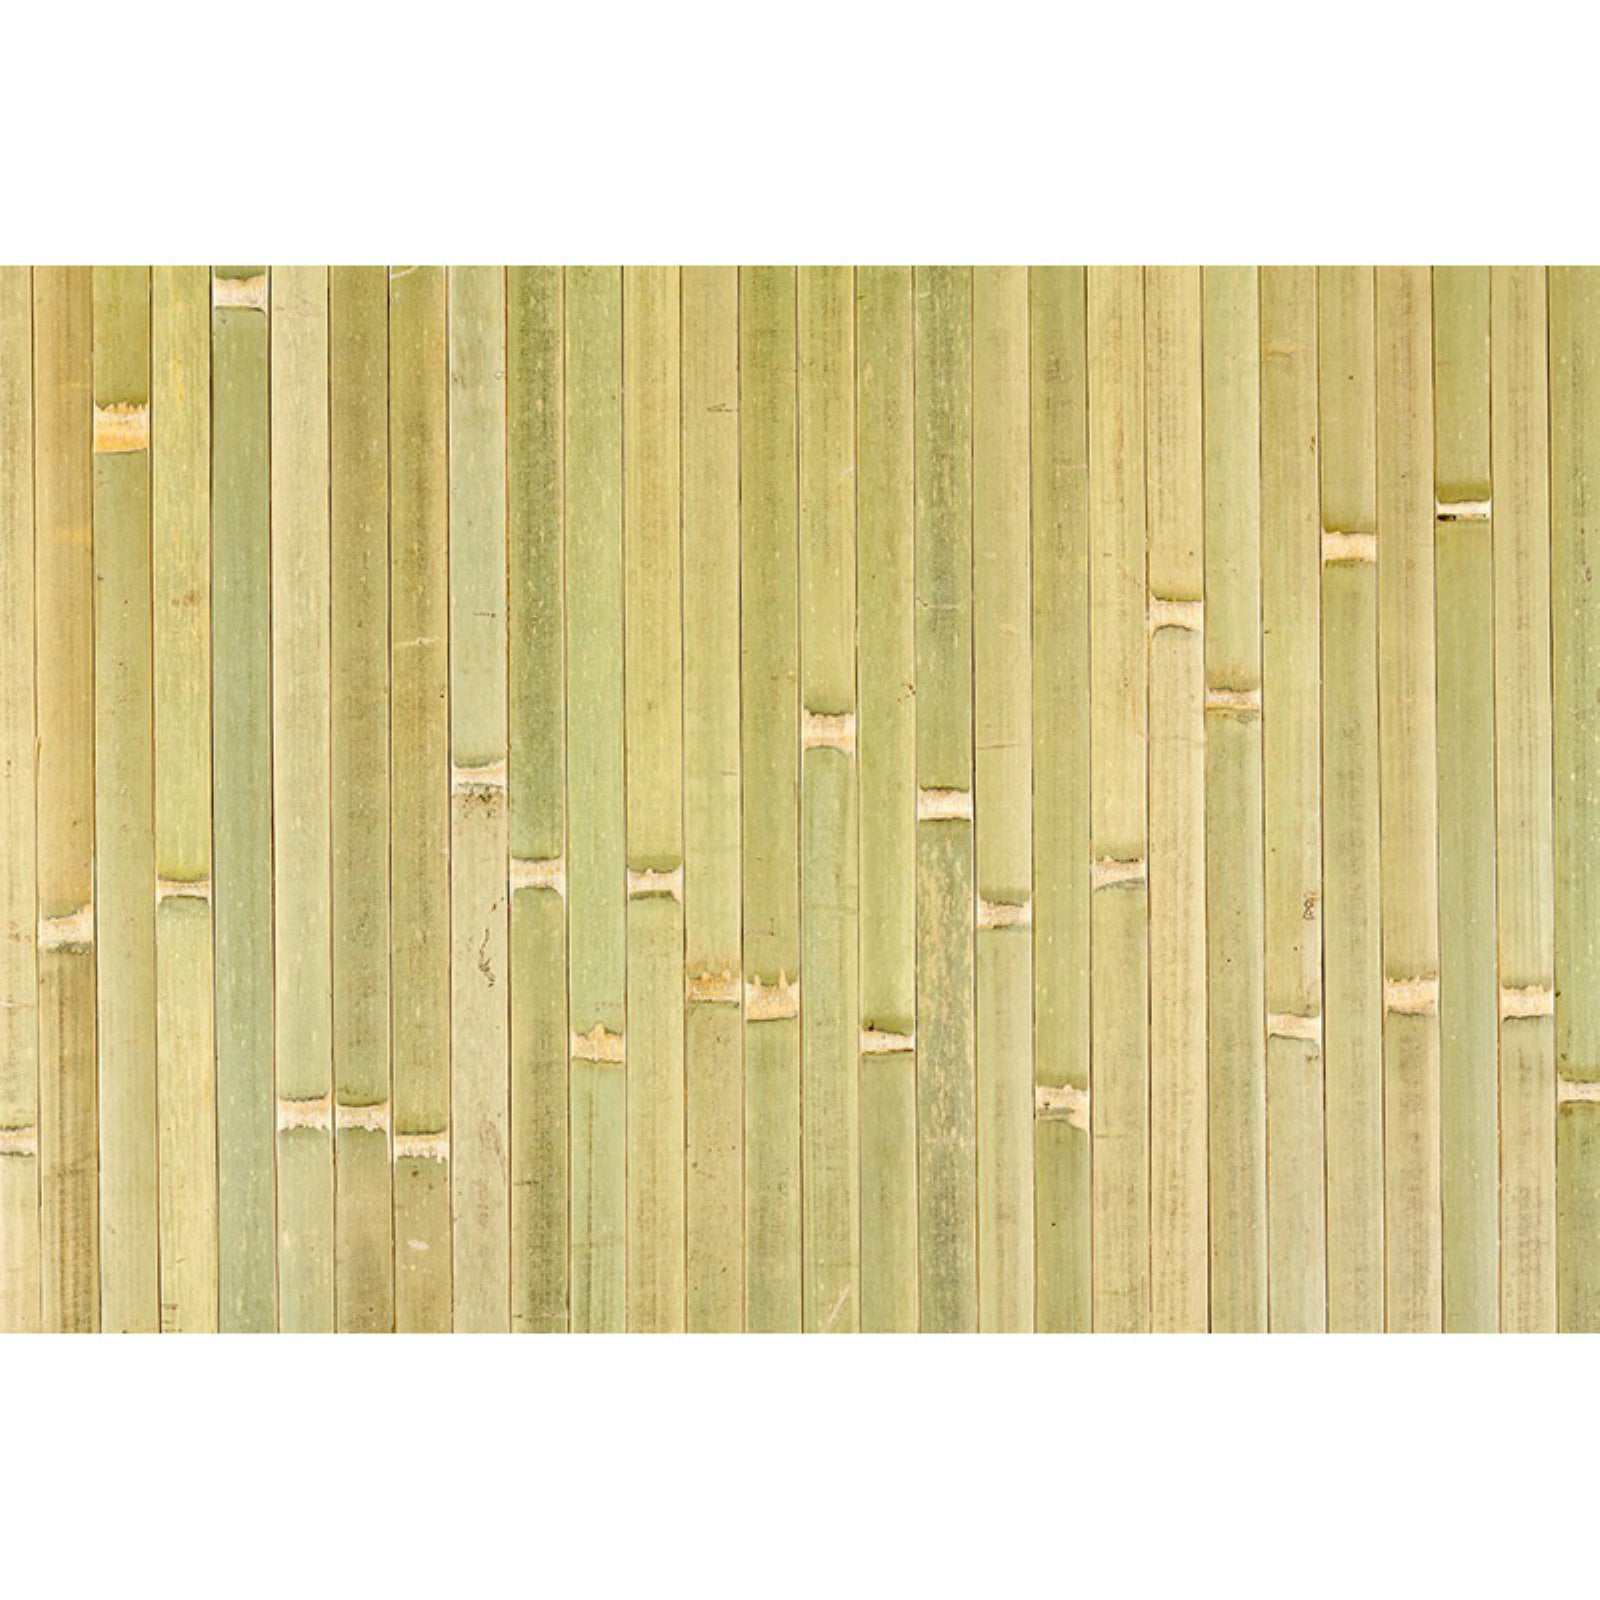 Forever Bamboo 4 x 8 ft. Bamboo Wall Paneling - Walmart.com